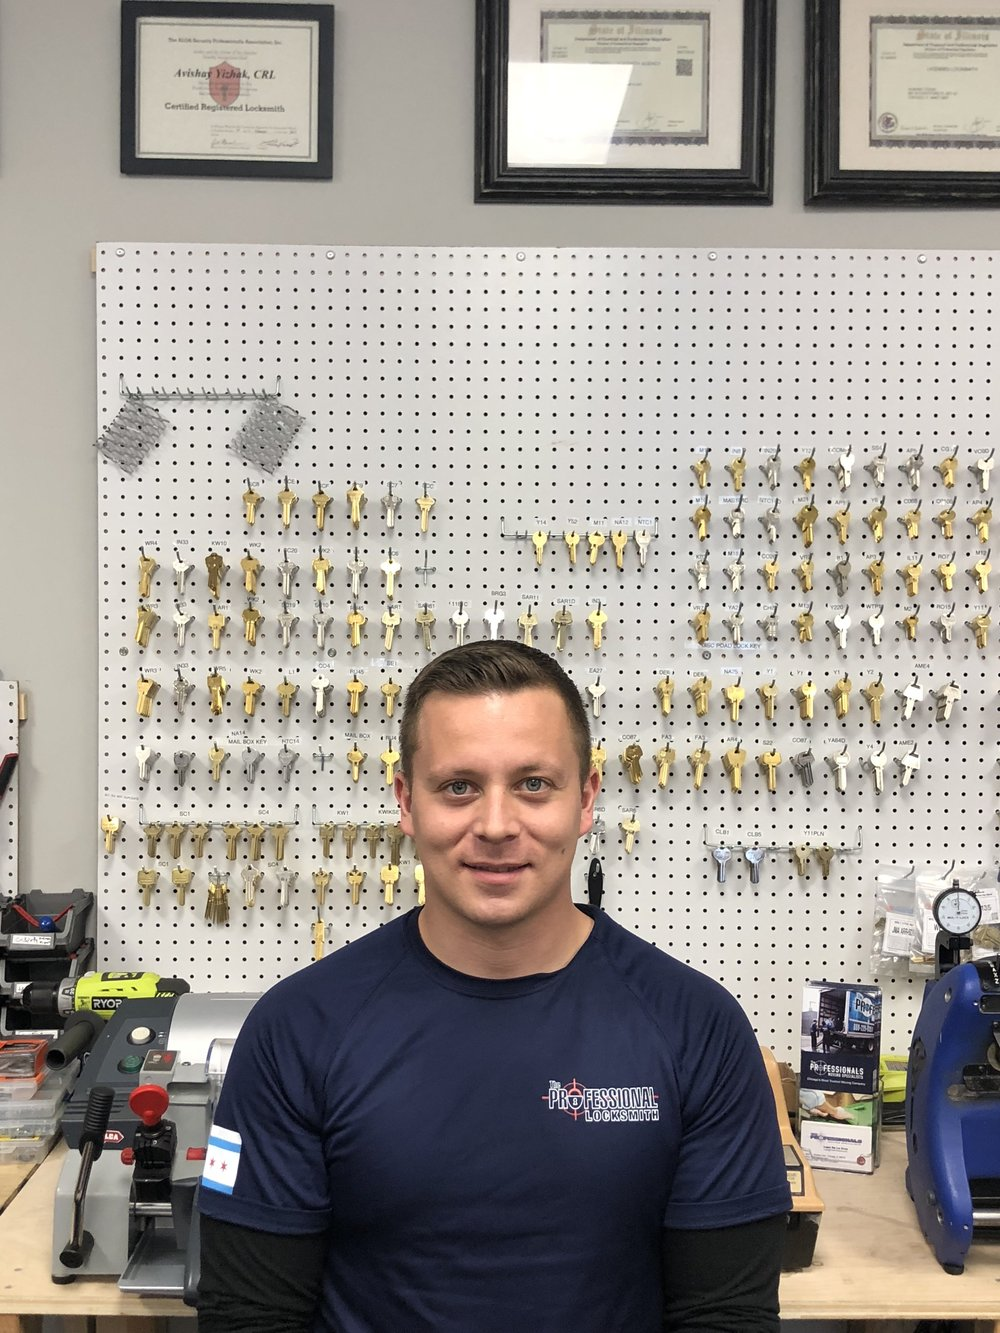 Joshua A - locksmith technician at The Professional Locksmith